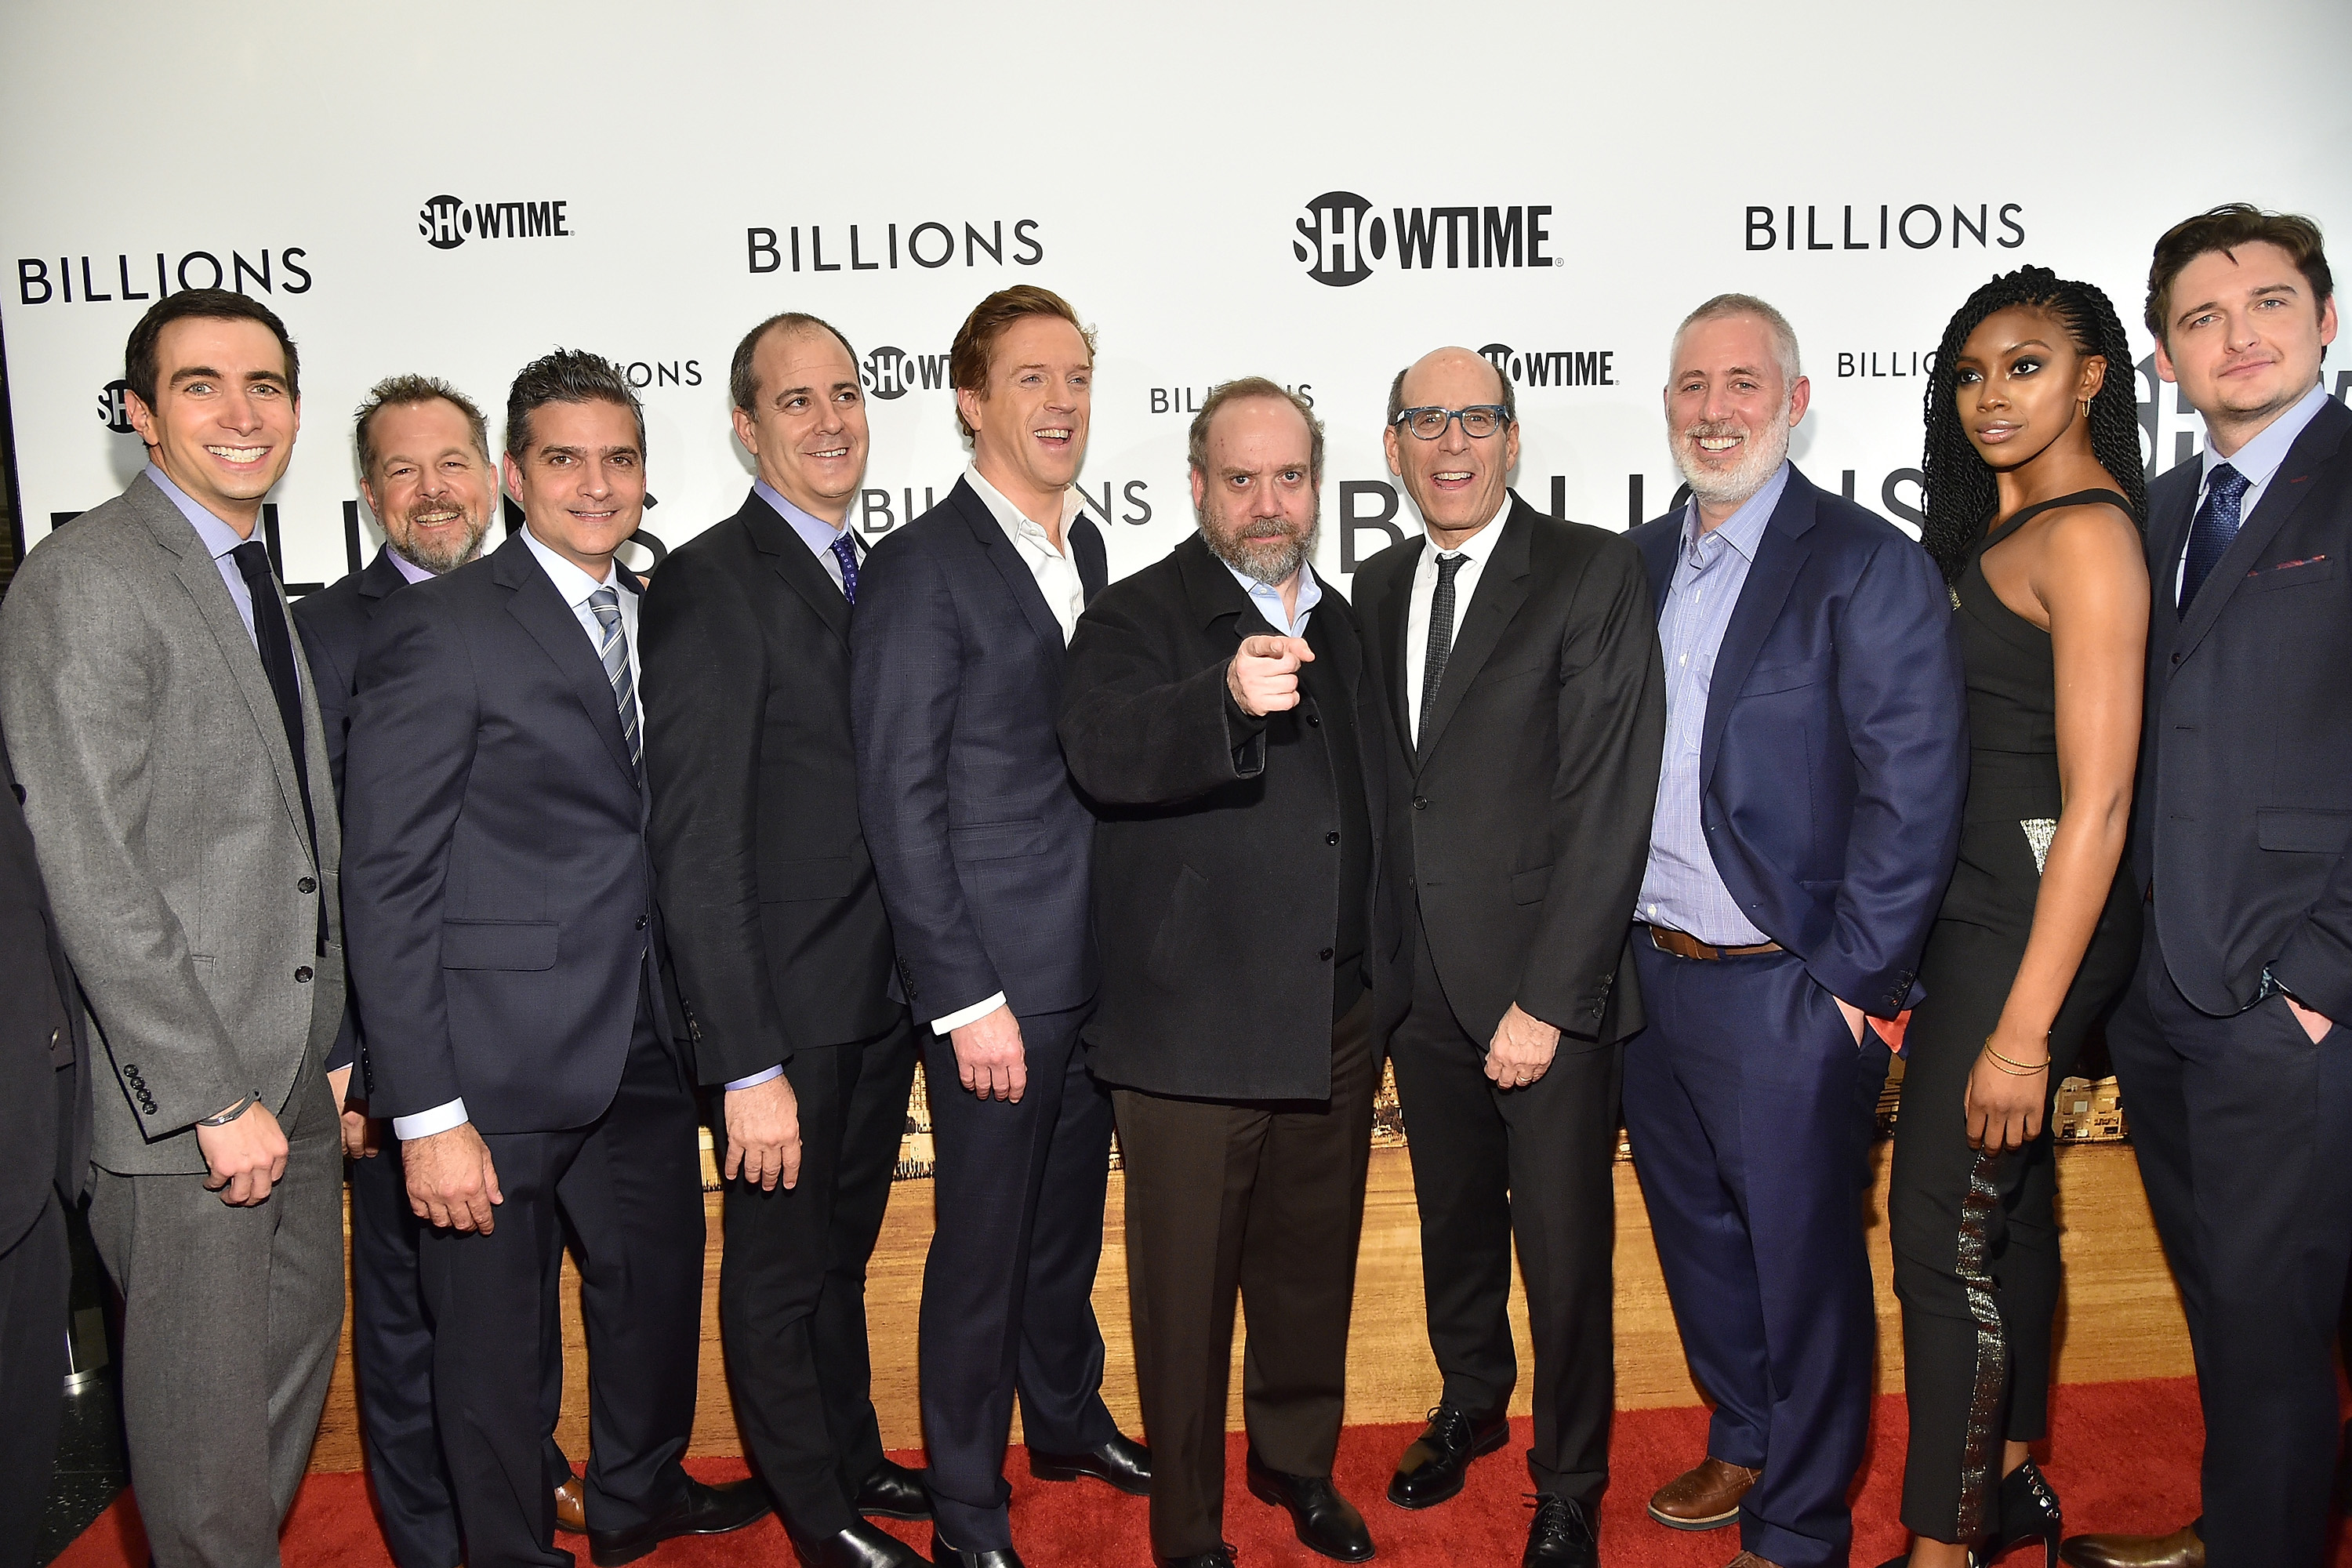 "(L-R) Andrew Ross Sorkin, David Costabile, David Levien, David Nevins, Damian Lewis, Paul Giamatti, Matthew C. Blank, Brian Koppelman, Condola Rashad, and Toby Leonard Moore attend the Showtime series premiere of ""Billions""."